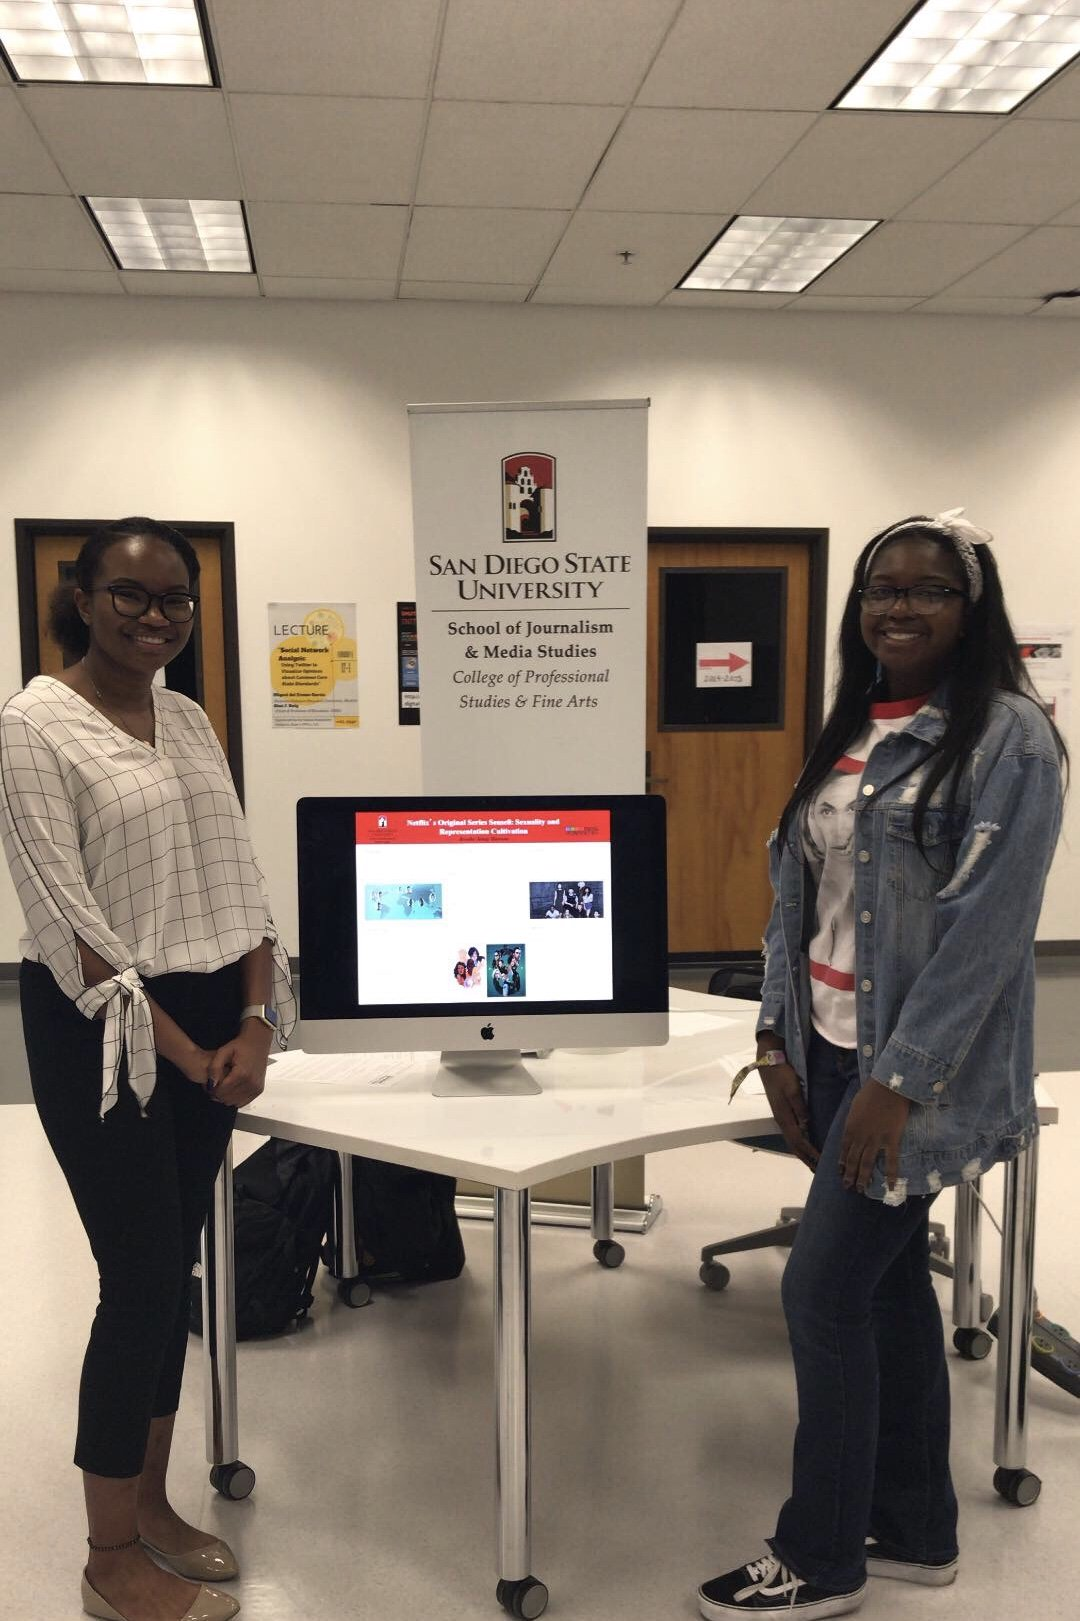 Sdsu Admissions On Twitter Students From Various Sdsu Colleges Are Showcasing Their Class Projects At The Dhatsdsu Showcase Until 2 P M In La 61 Sdsu Love Library Dome Be Sure To Check